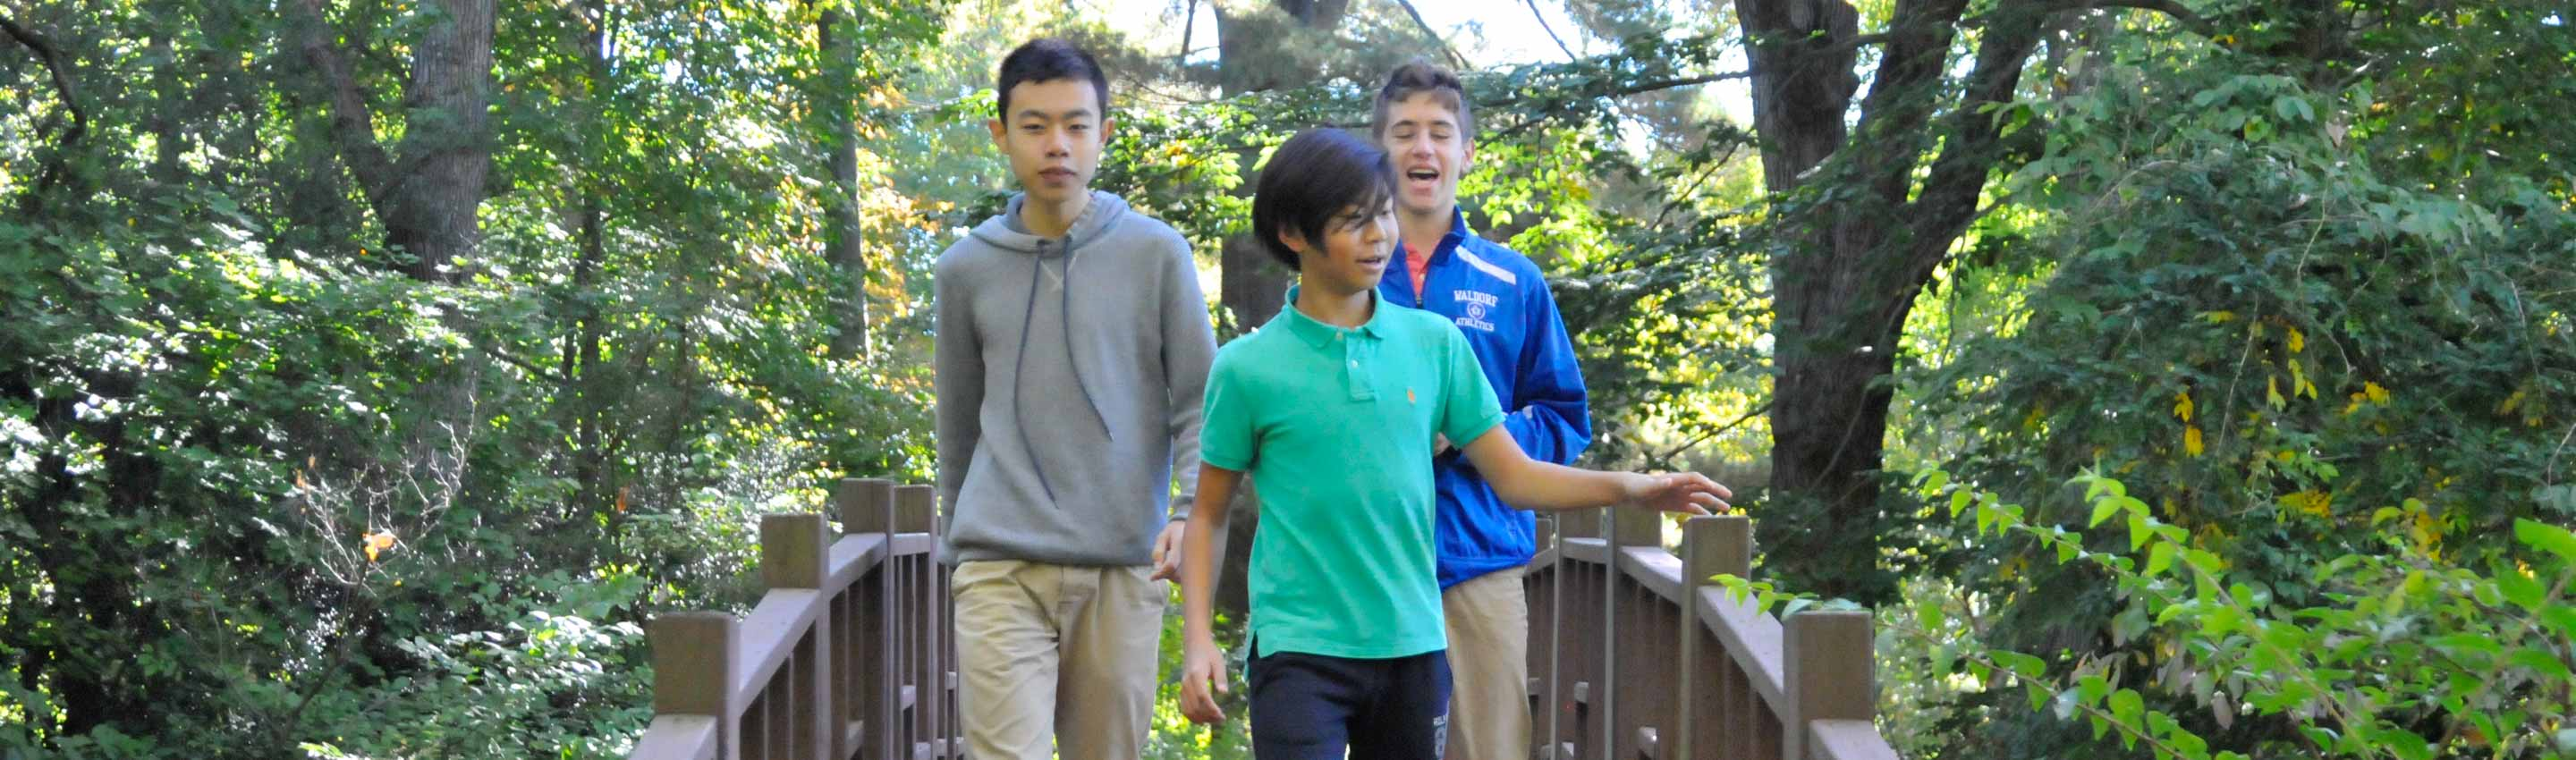 Admissions Process Faqs Waldorf School Of Garden City